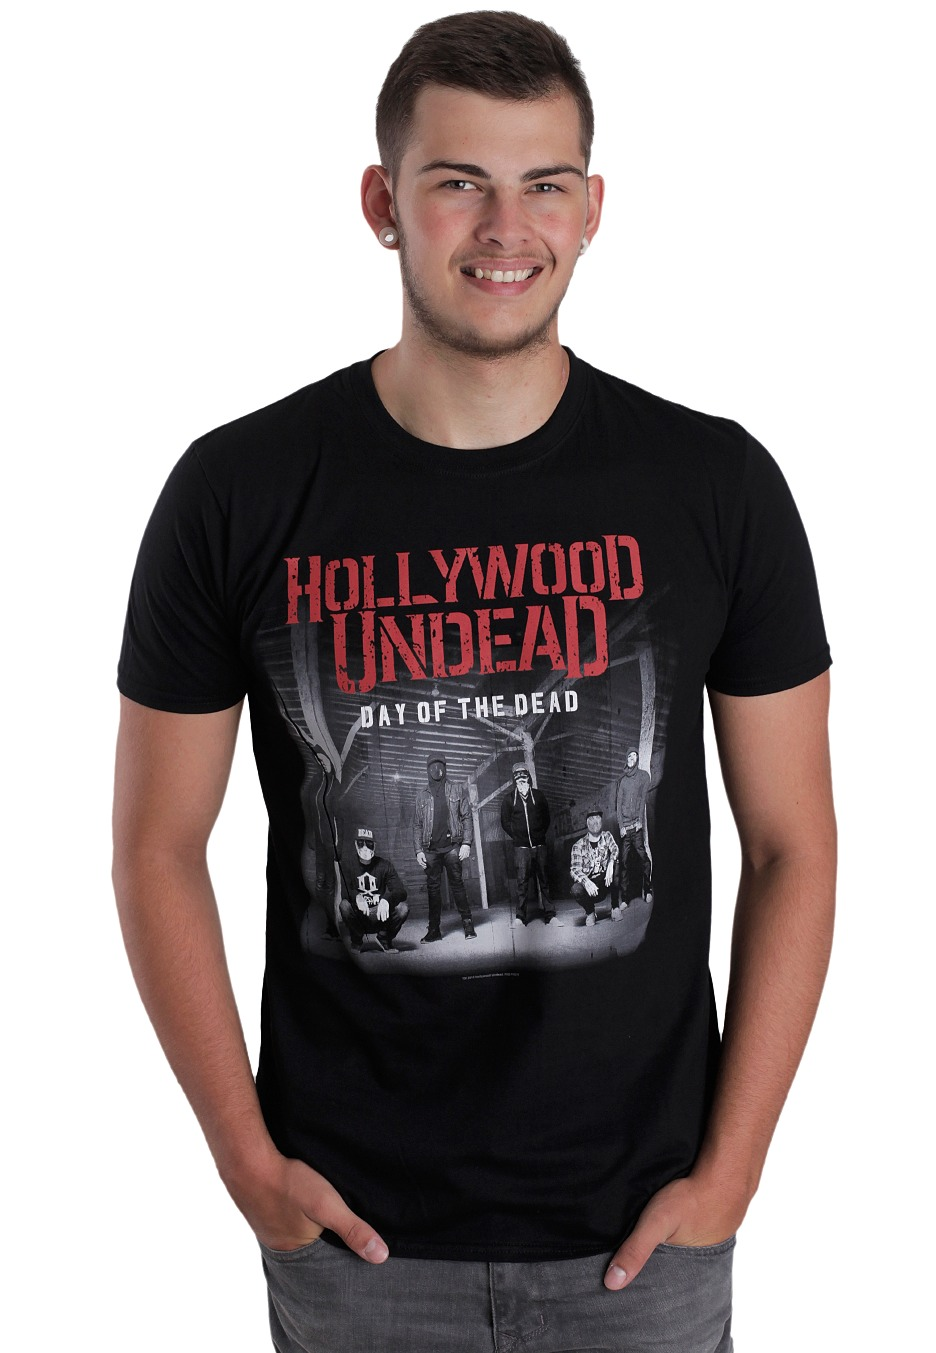 358c45f26989e Hollywood Undead - Day Of The Dead - T-Shirt - Official Crossover Merchandise  Shop - Impericon.com Worldwide